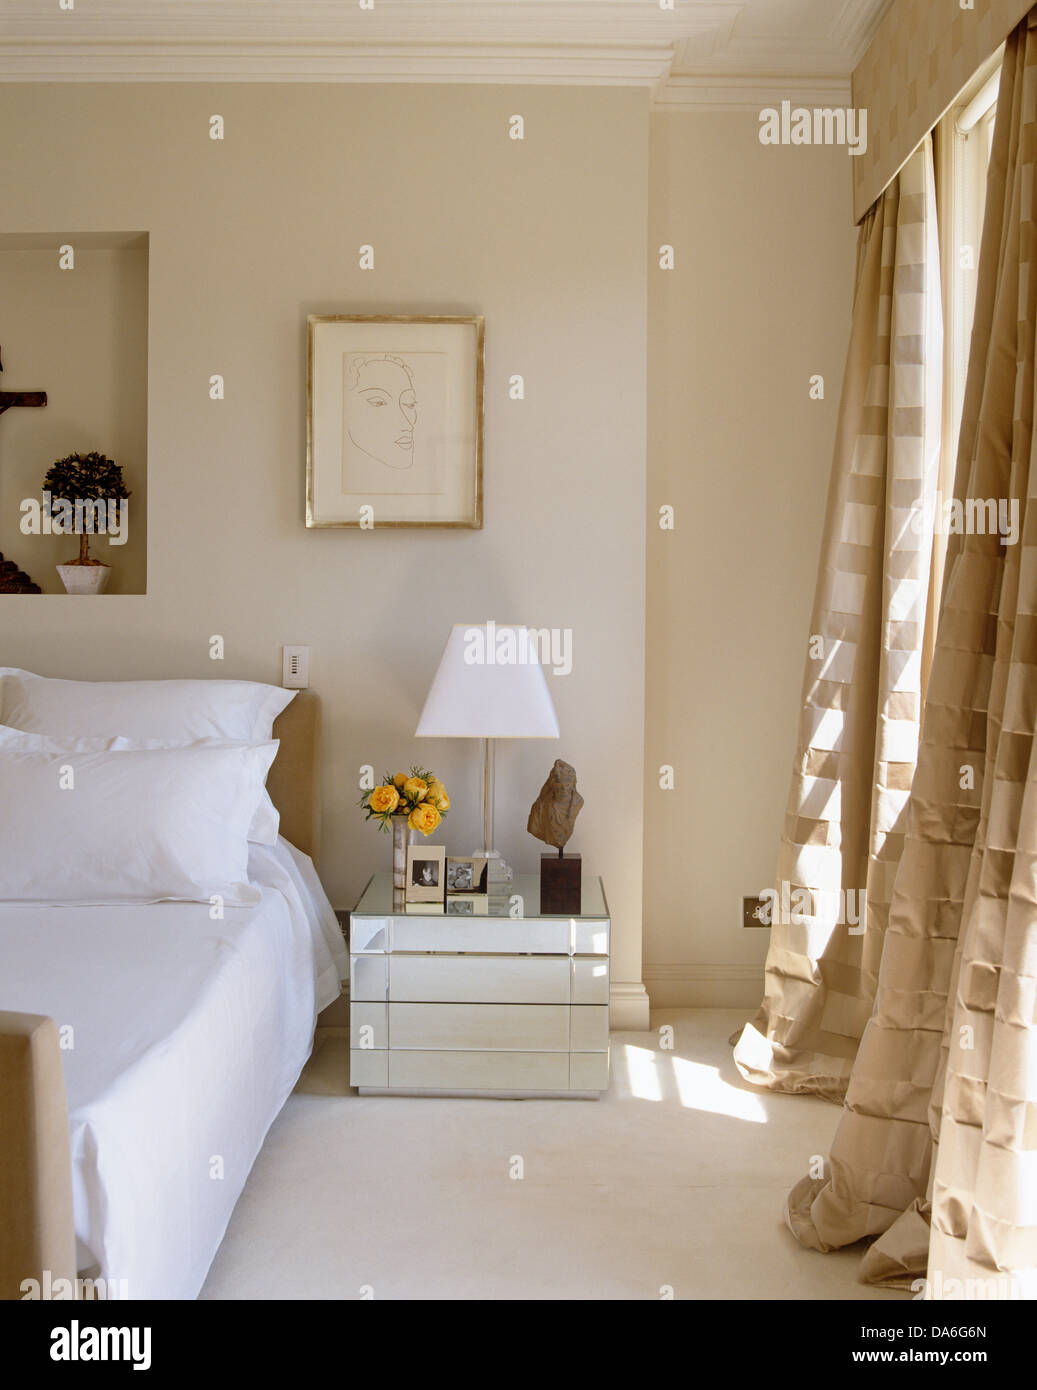 Ordinaire White Lamp On Mirrored Bedside Table Next To Double Bed In Contemporary  Bedroom With Opulent Cream Silk Curtains On The Window